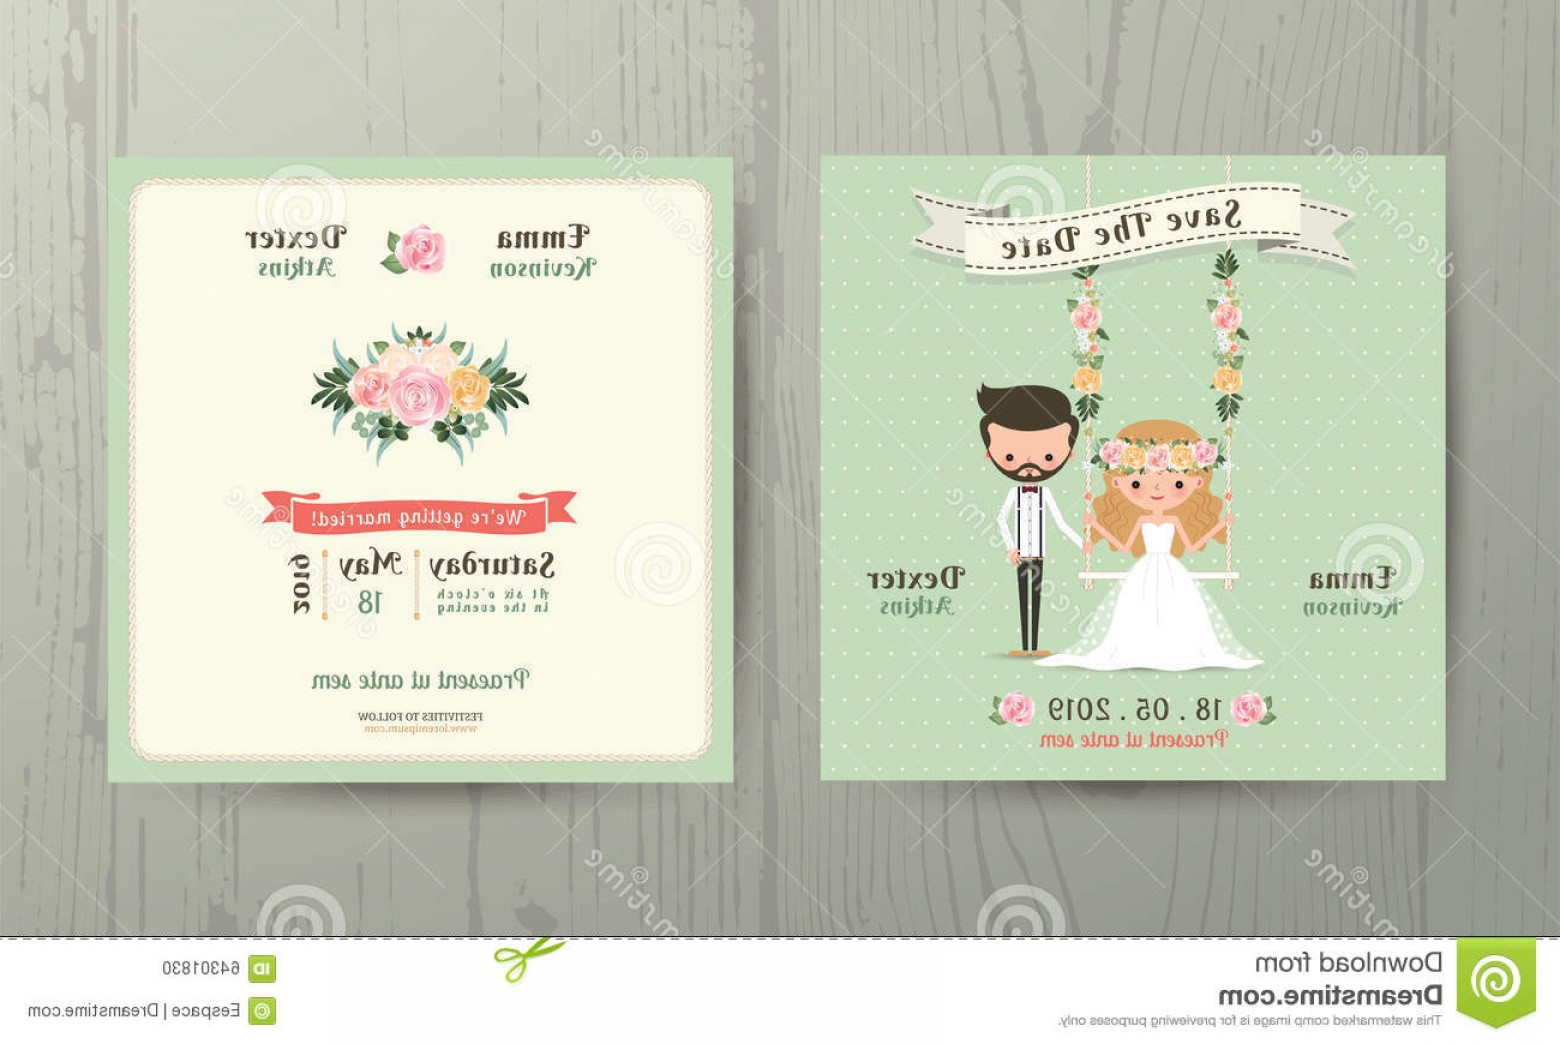 Rustic Wedding Invitation Vector: Stock Illustration Rustic Wedding Cartoon Bride Groom Couple Invitation Card Wood Background Image